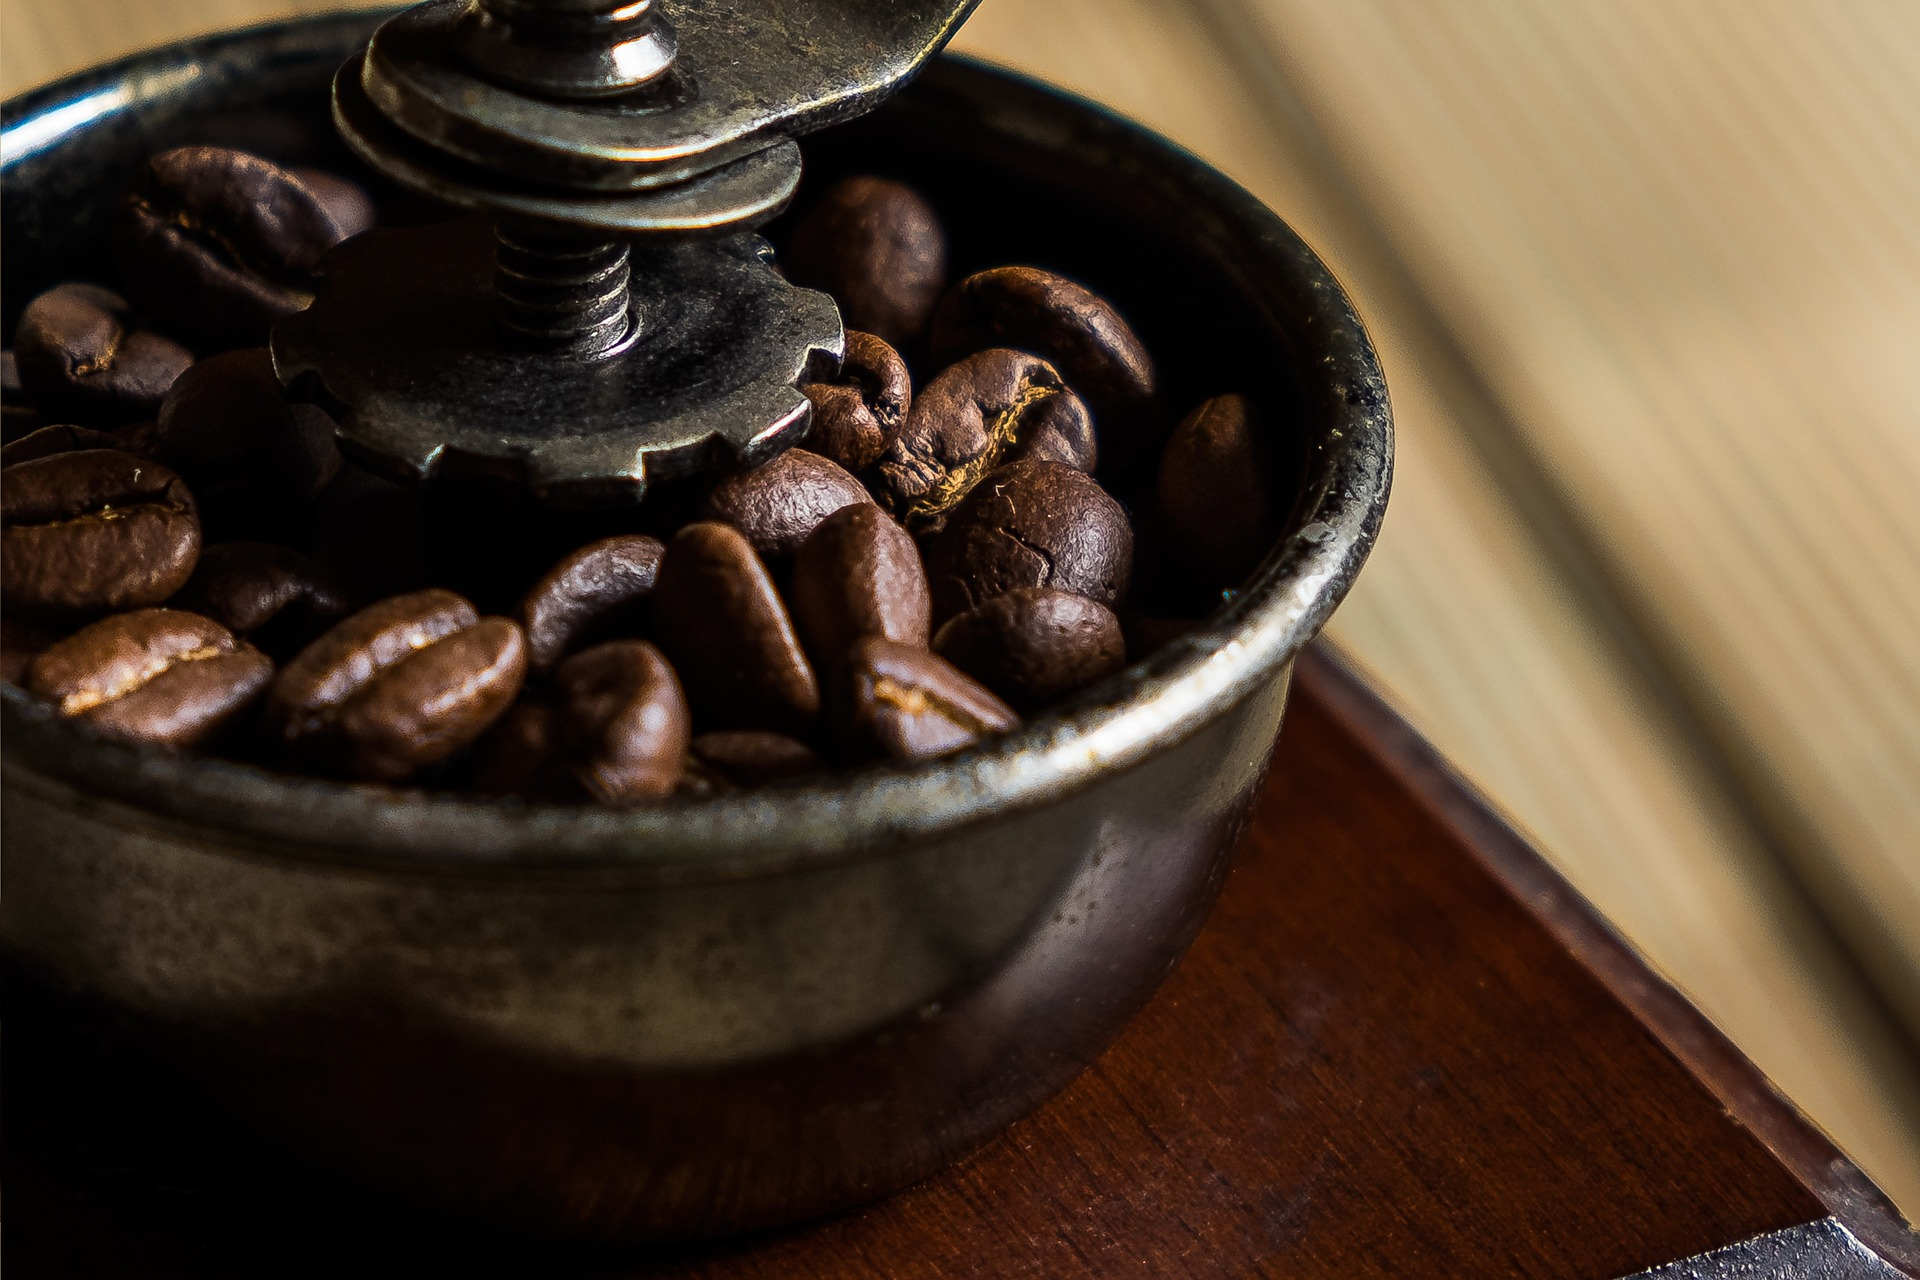 A burr grinder with coffee beans